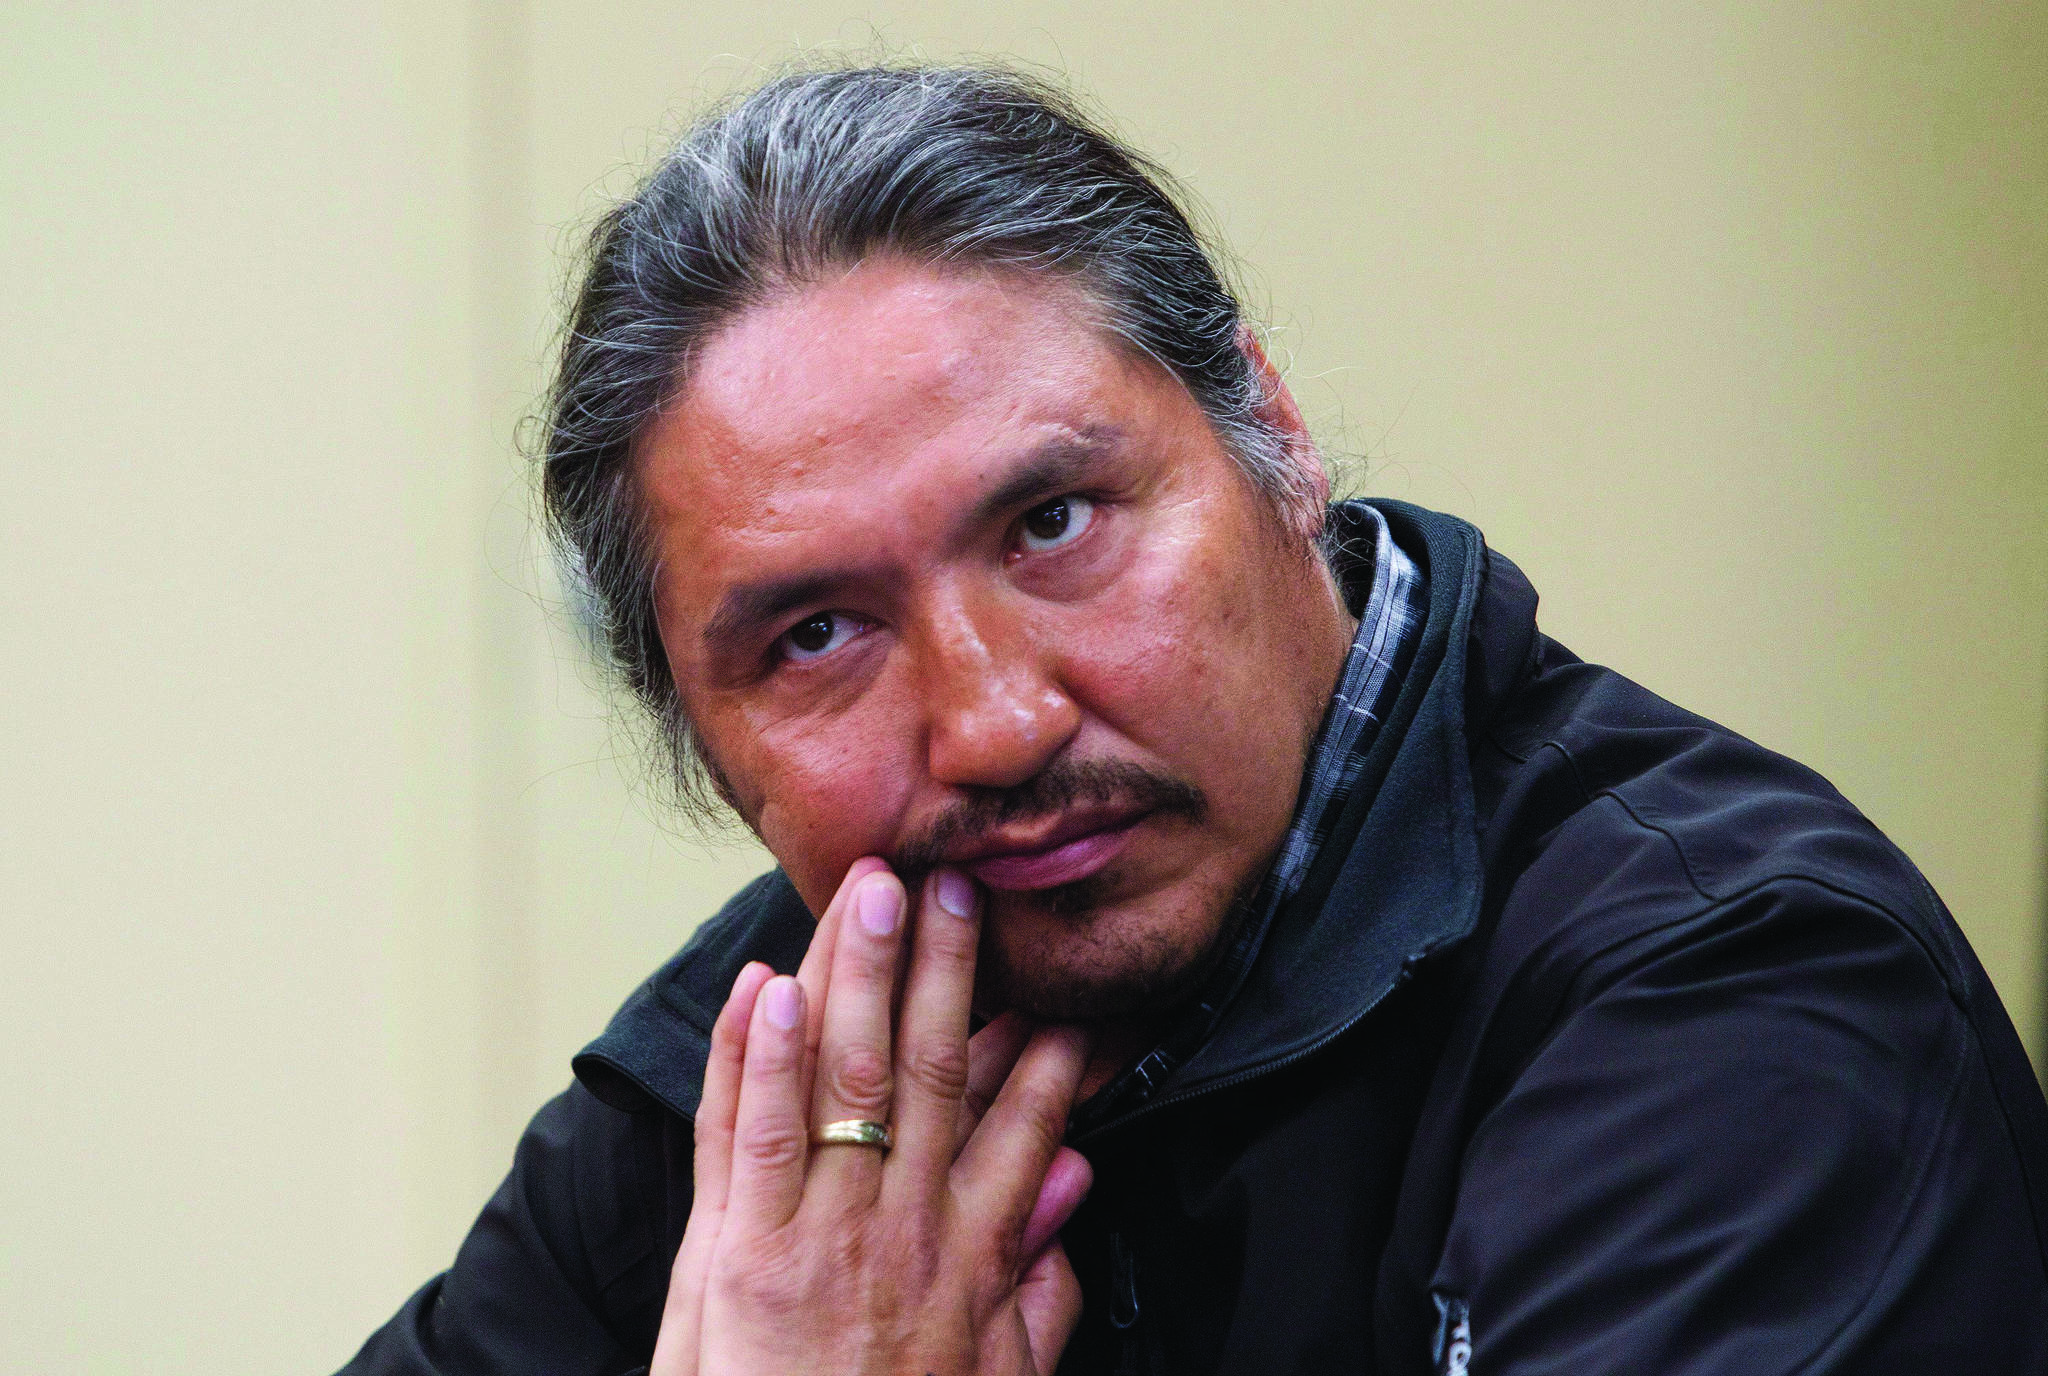 Chief Allan Adam of the Athabasca Chipewyan First Nation listens as Archbishop Desmond Tutu speaks during a press conference in Fort McMurray, Alta. on Friday May 30, 2014. THE CANADIAN PRESS/Jason Franson